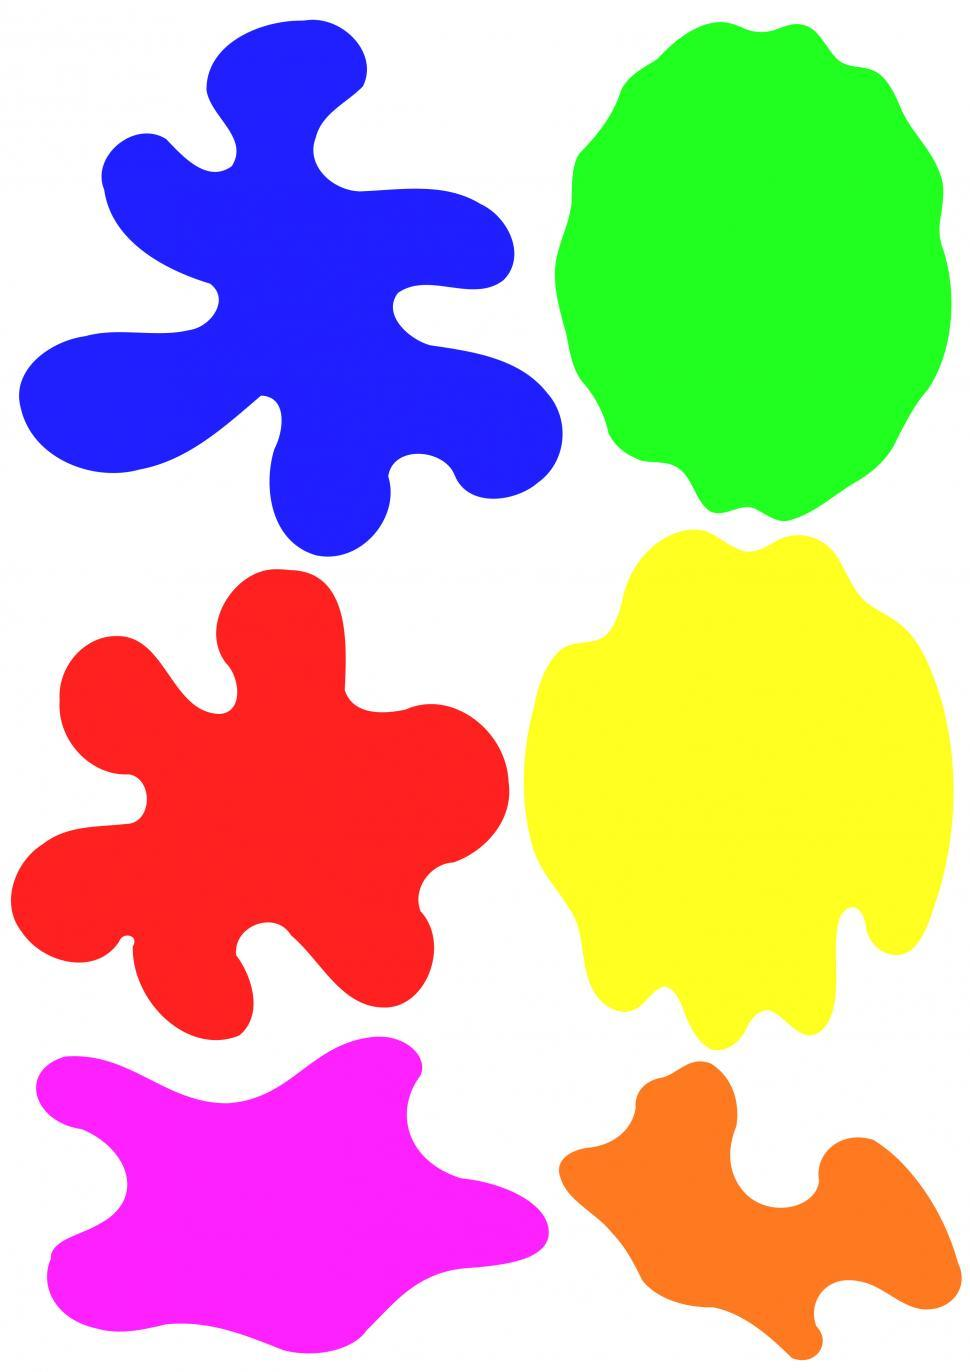 Download Free Stock Photo of Colorful different shapes blobs on white background